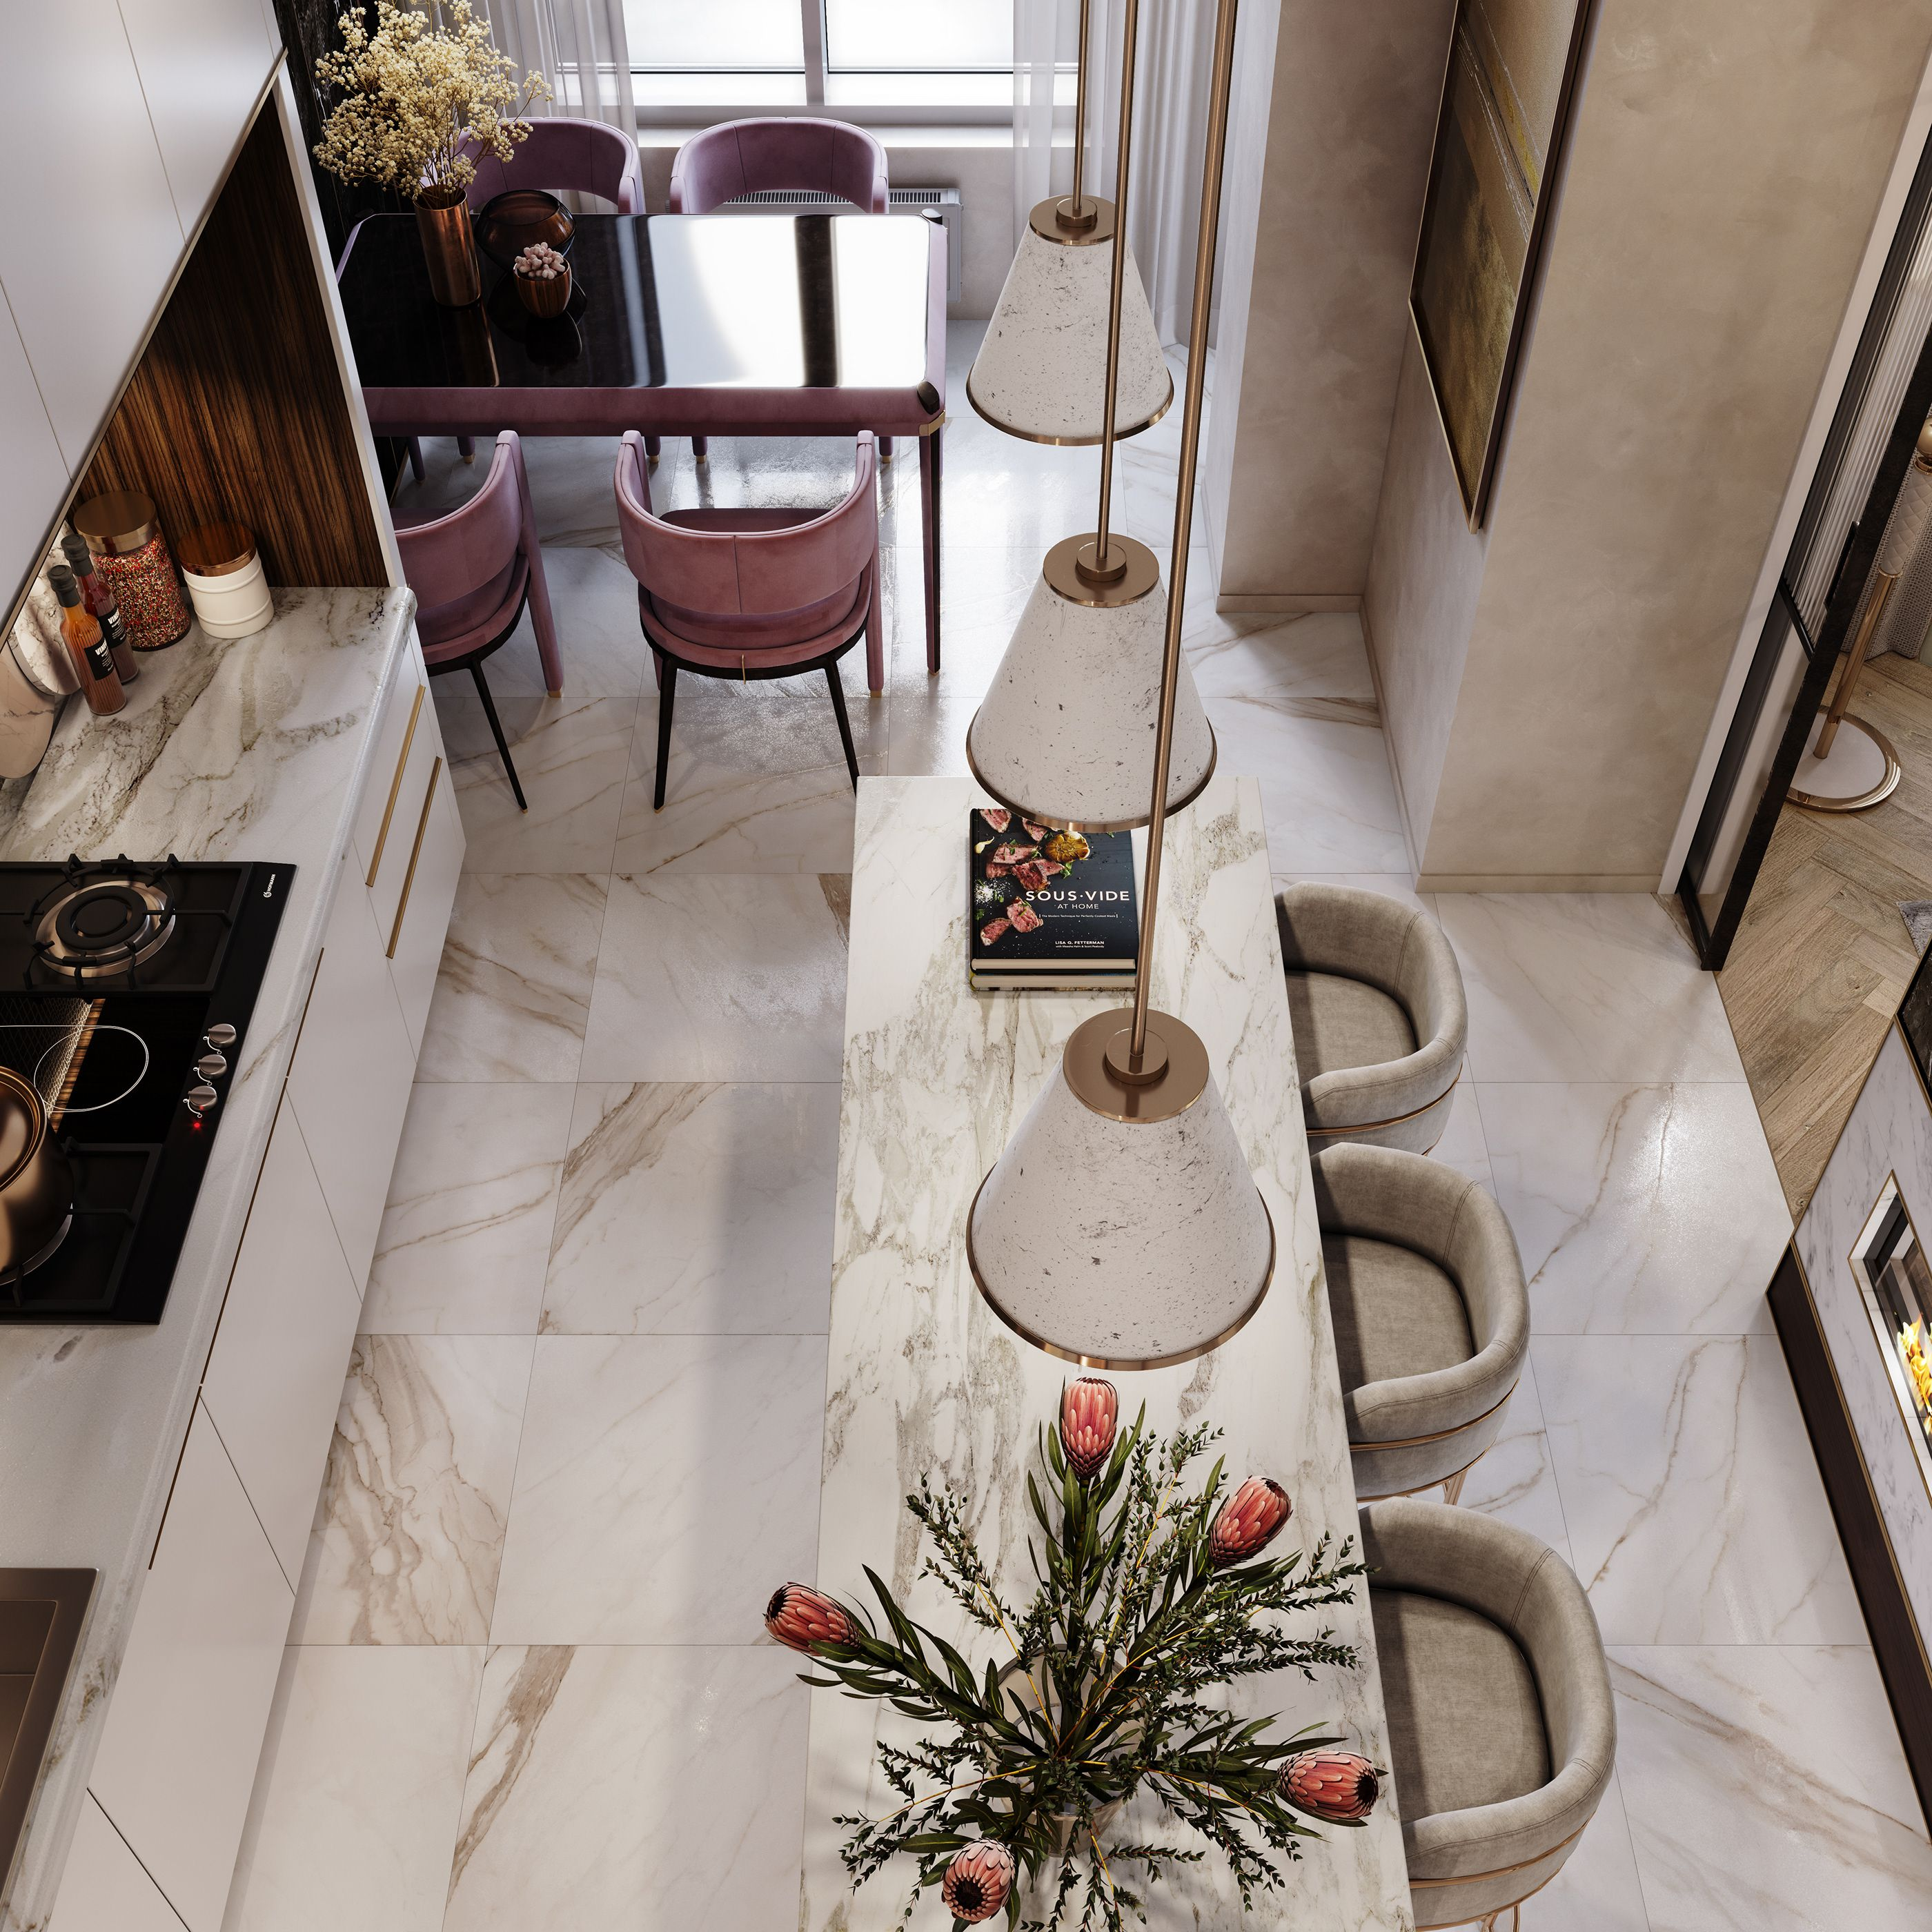 2 Bedroom Apartment Interior Design On Behance With Images